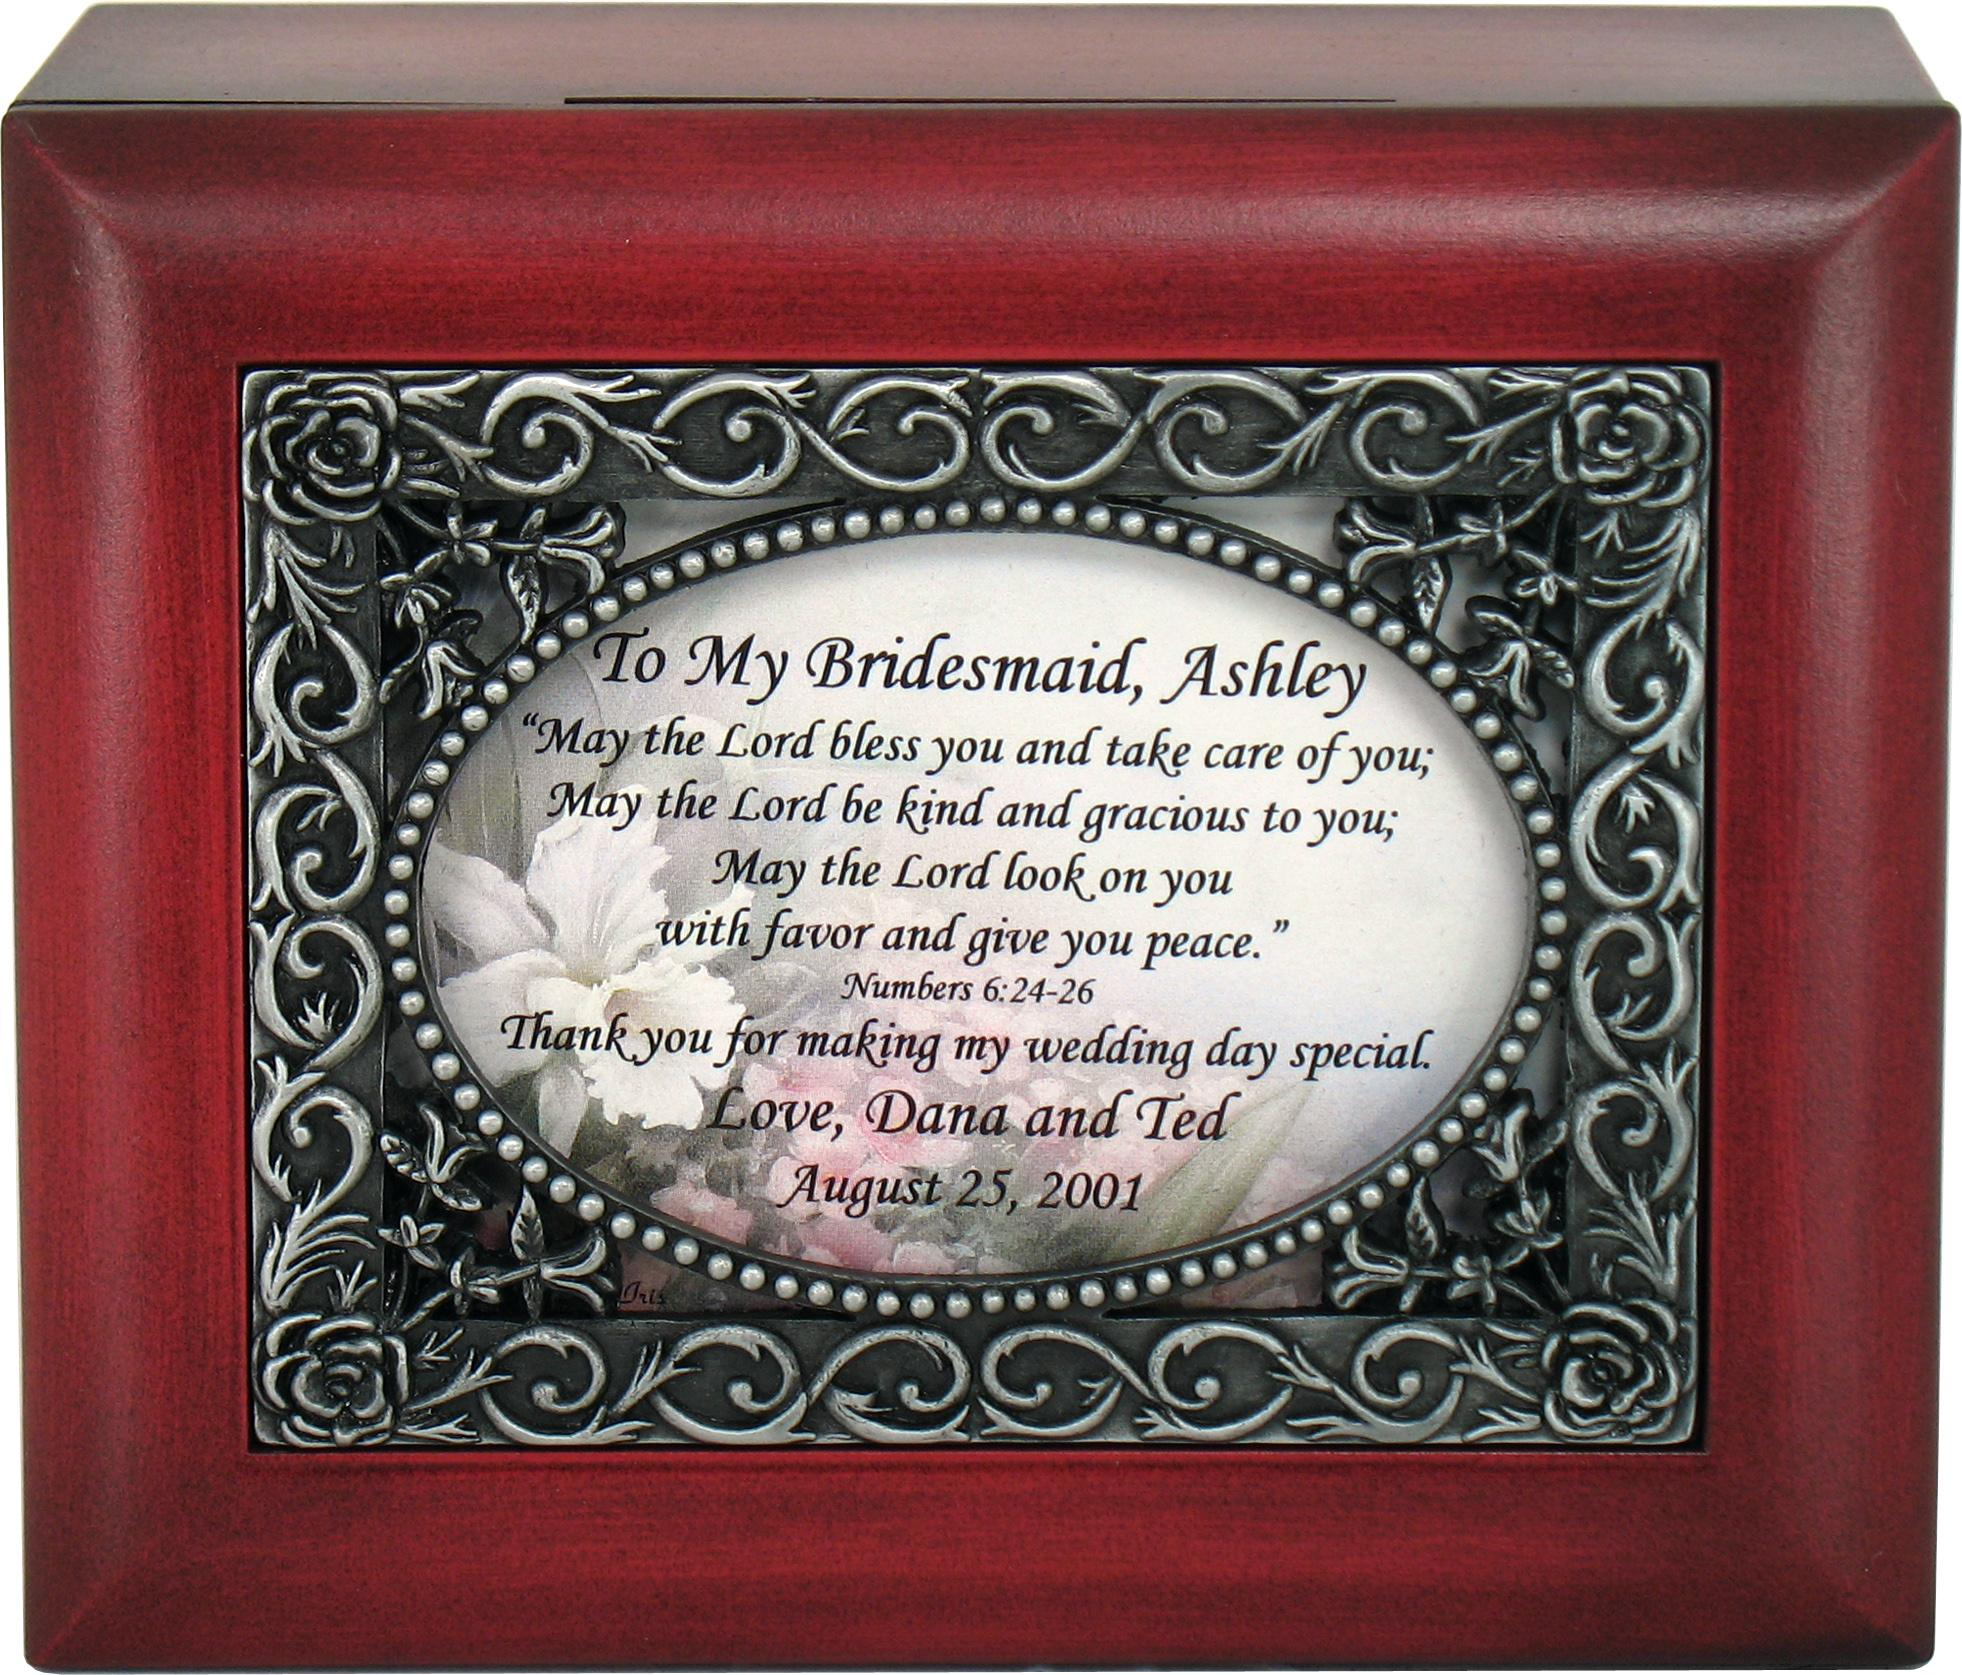 Personalized Bridesmaid Keepsake Box #SJBX-BM-P